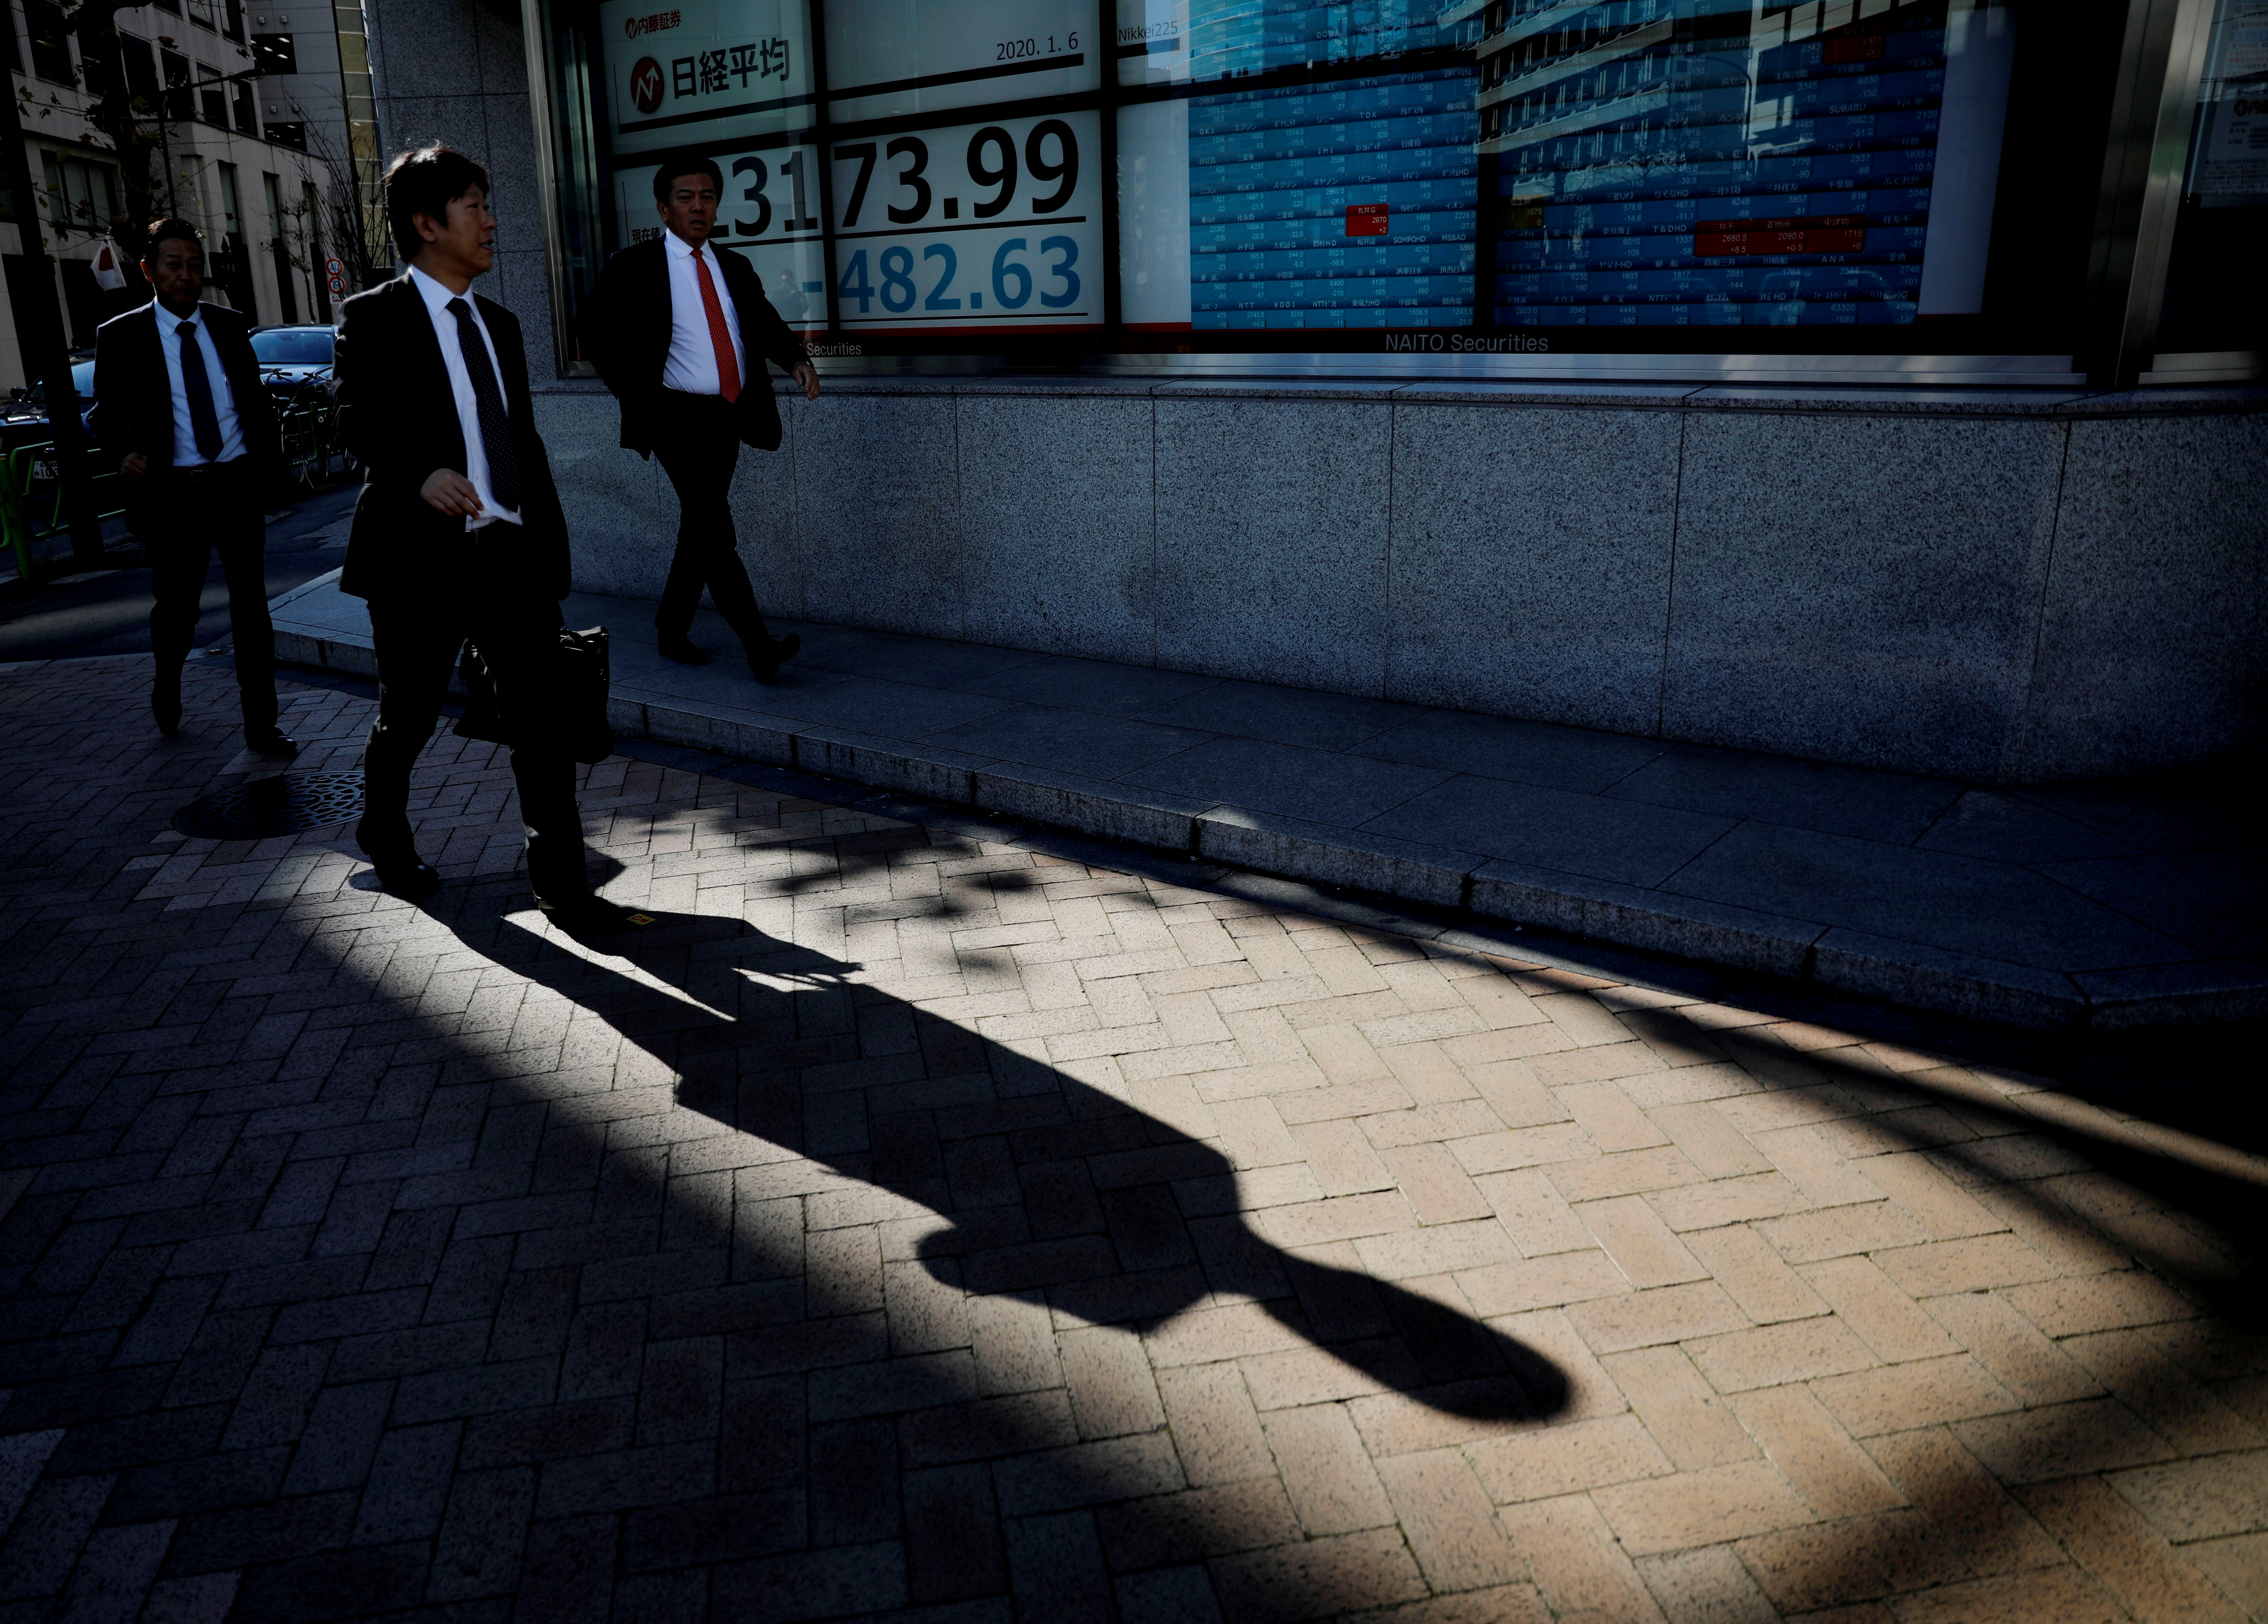 A man looks at a board showing stock prices outside a brokerage in Tokyo, Japan, January 6, 2020.   REUTERS/Kim Kyung-Hoon